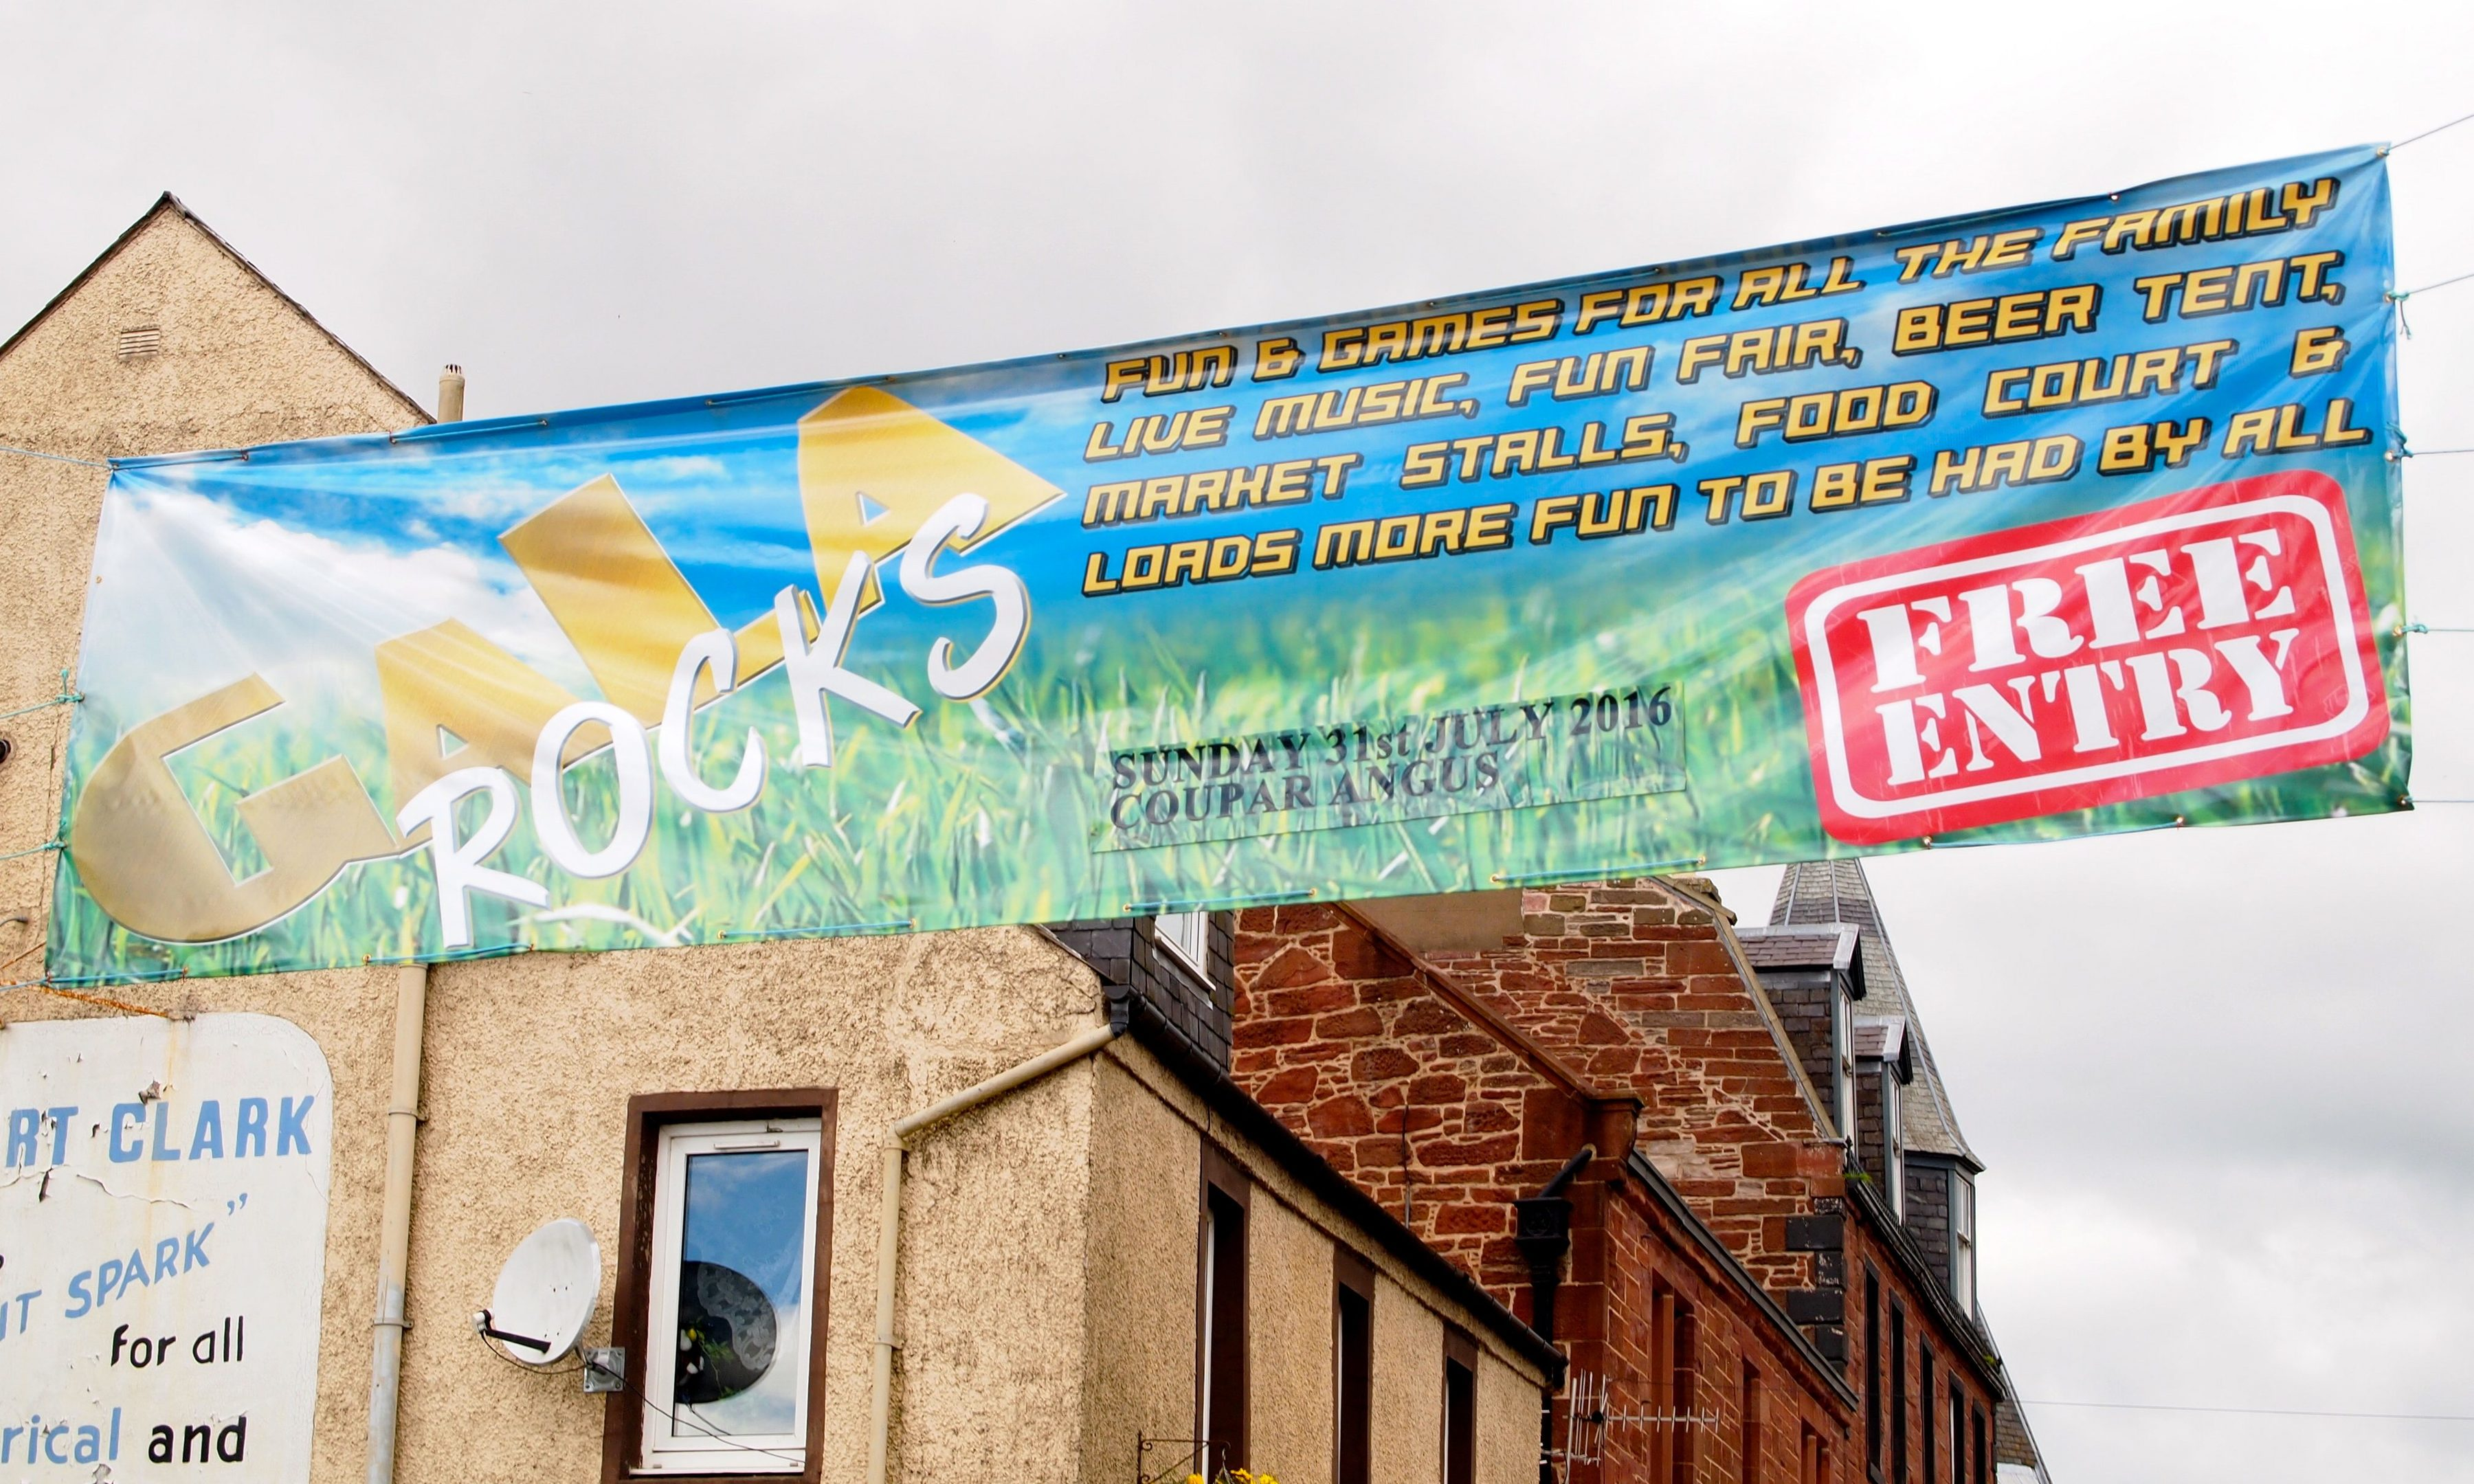 The Coupar Angus Gala banner proudly flies above the town square.